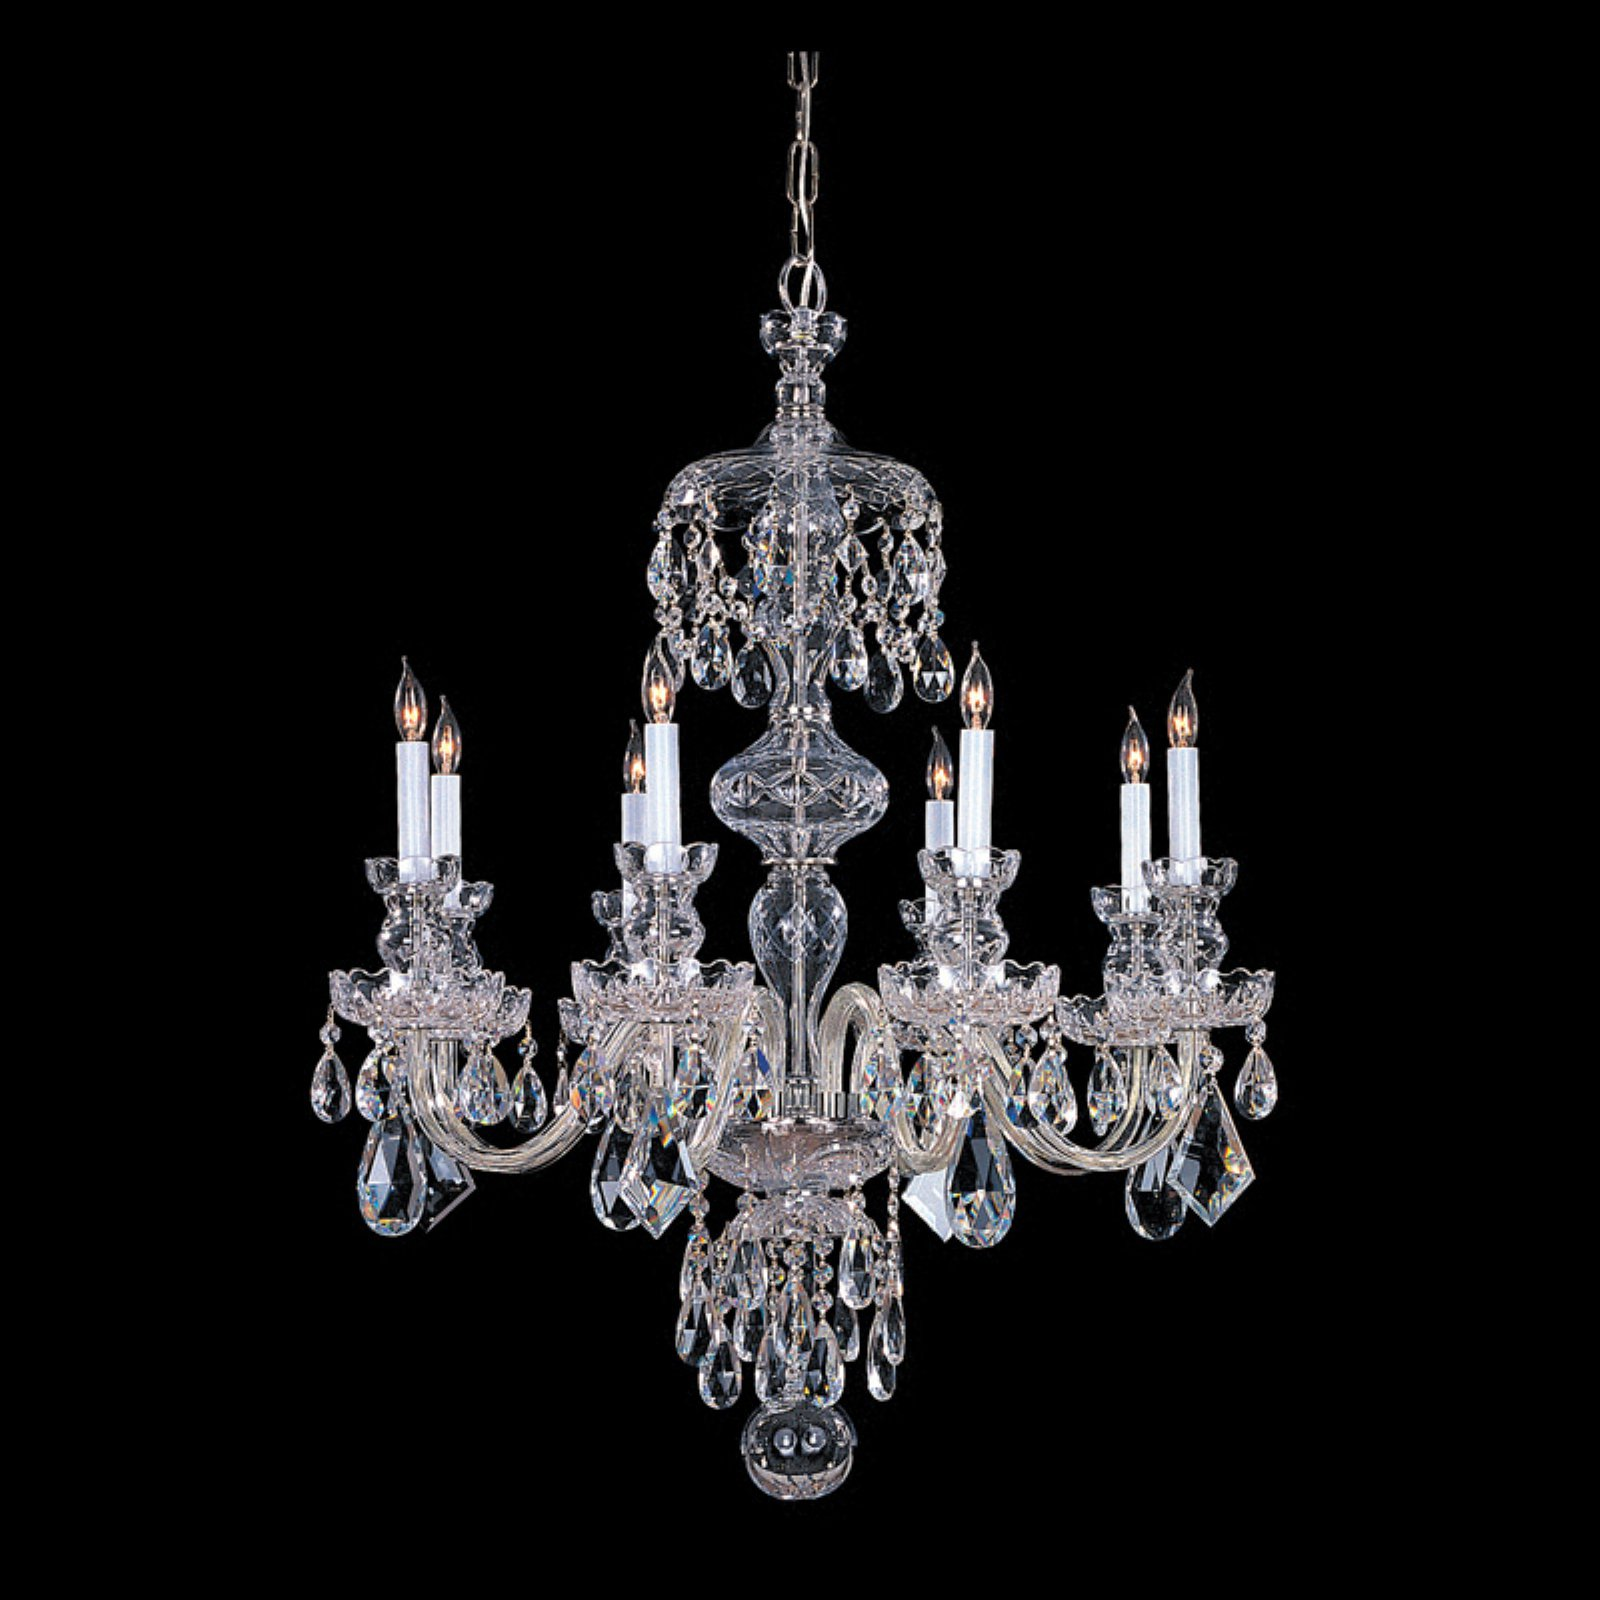 Crystorama 1148-CH-CL-MWP Traditional Crystal Chandelier 28W in. by Crystorama